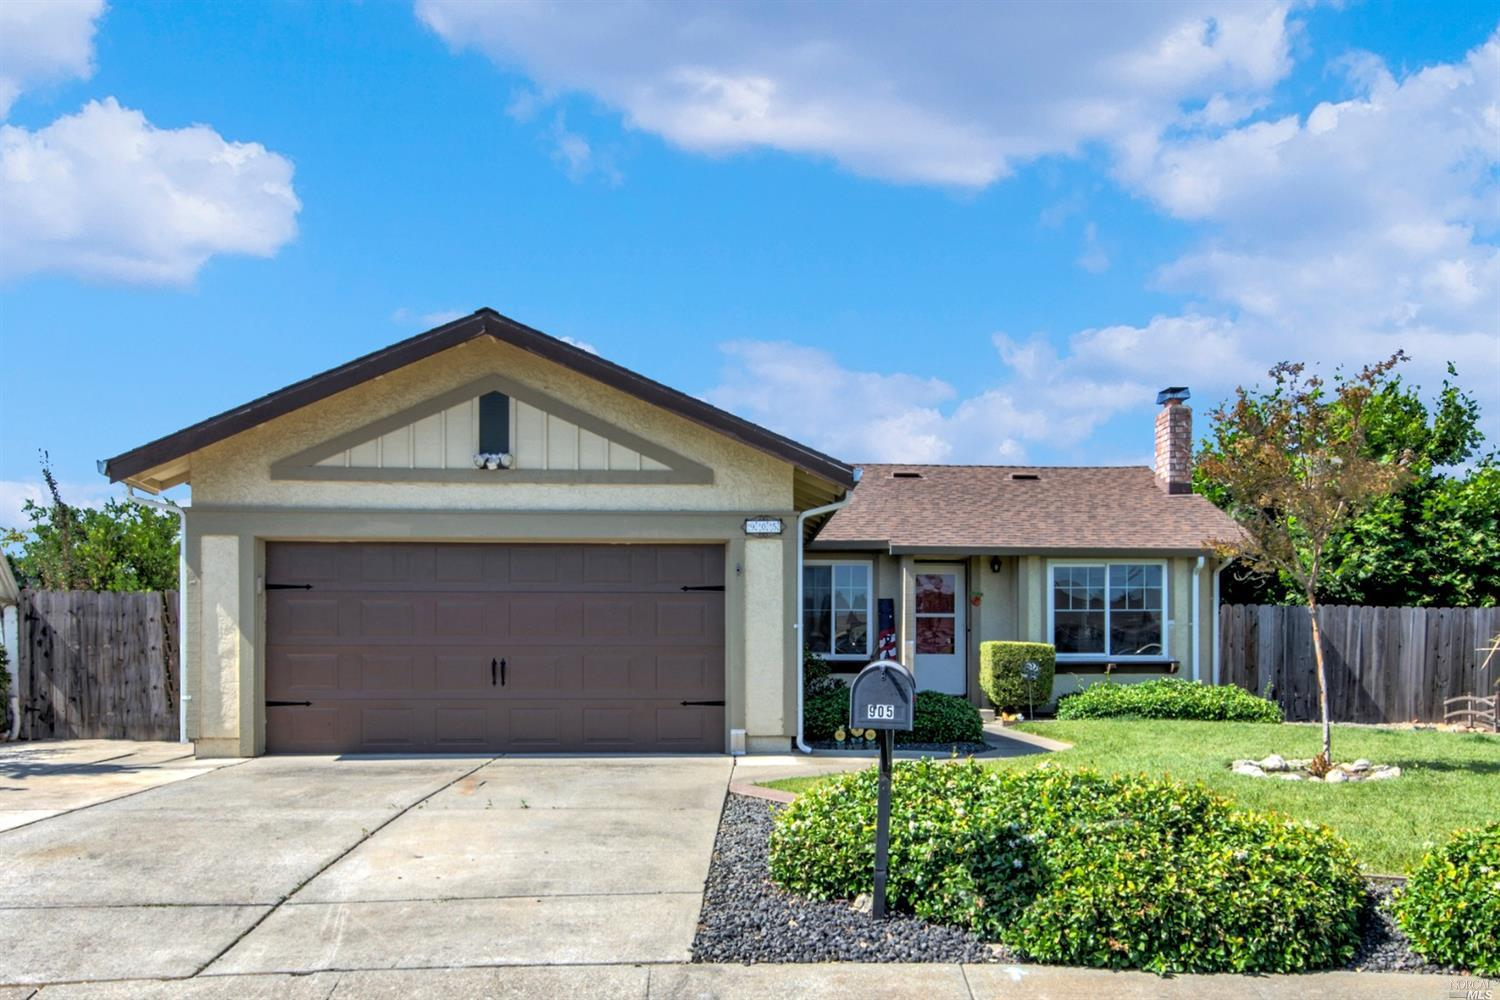 Highly desired Suisun single-story home with RV parking and a large backyard located in a court near parks, schools, Hwy 12 and Travis Air Force Base. Updated kitchen offers granite countertops, peninsula bar seating, stainless-steel appliances and recessed lighting. Residence features laminate flooring, updated bathrooms, dual pane windows and sliding glass doors, a wood burning brick fireplace in the family room, crown molding in the dining/kitchen area and high ceilings. Home showcases an ideal open floor plan and includes an interior laundry room with shelving. Master bedroom boasts crown molding, a walk-in closet and exterior access to the backyard patio. Large master bathroom presents 2 sink granite vanities and a glass shower. Spacio